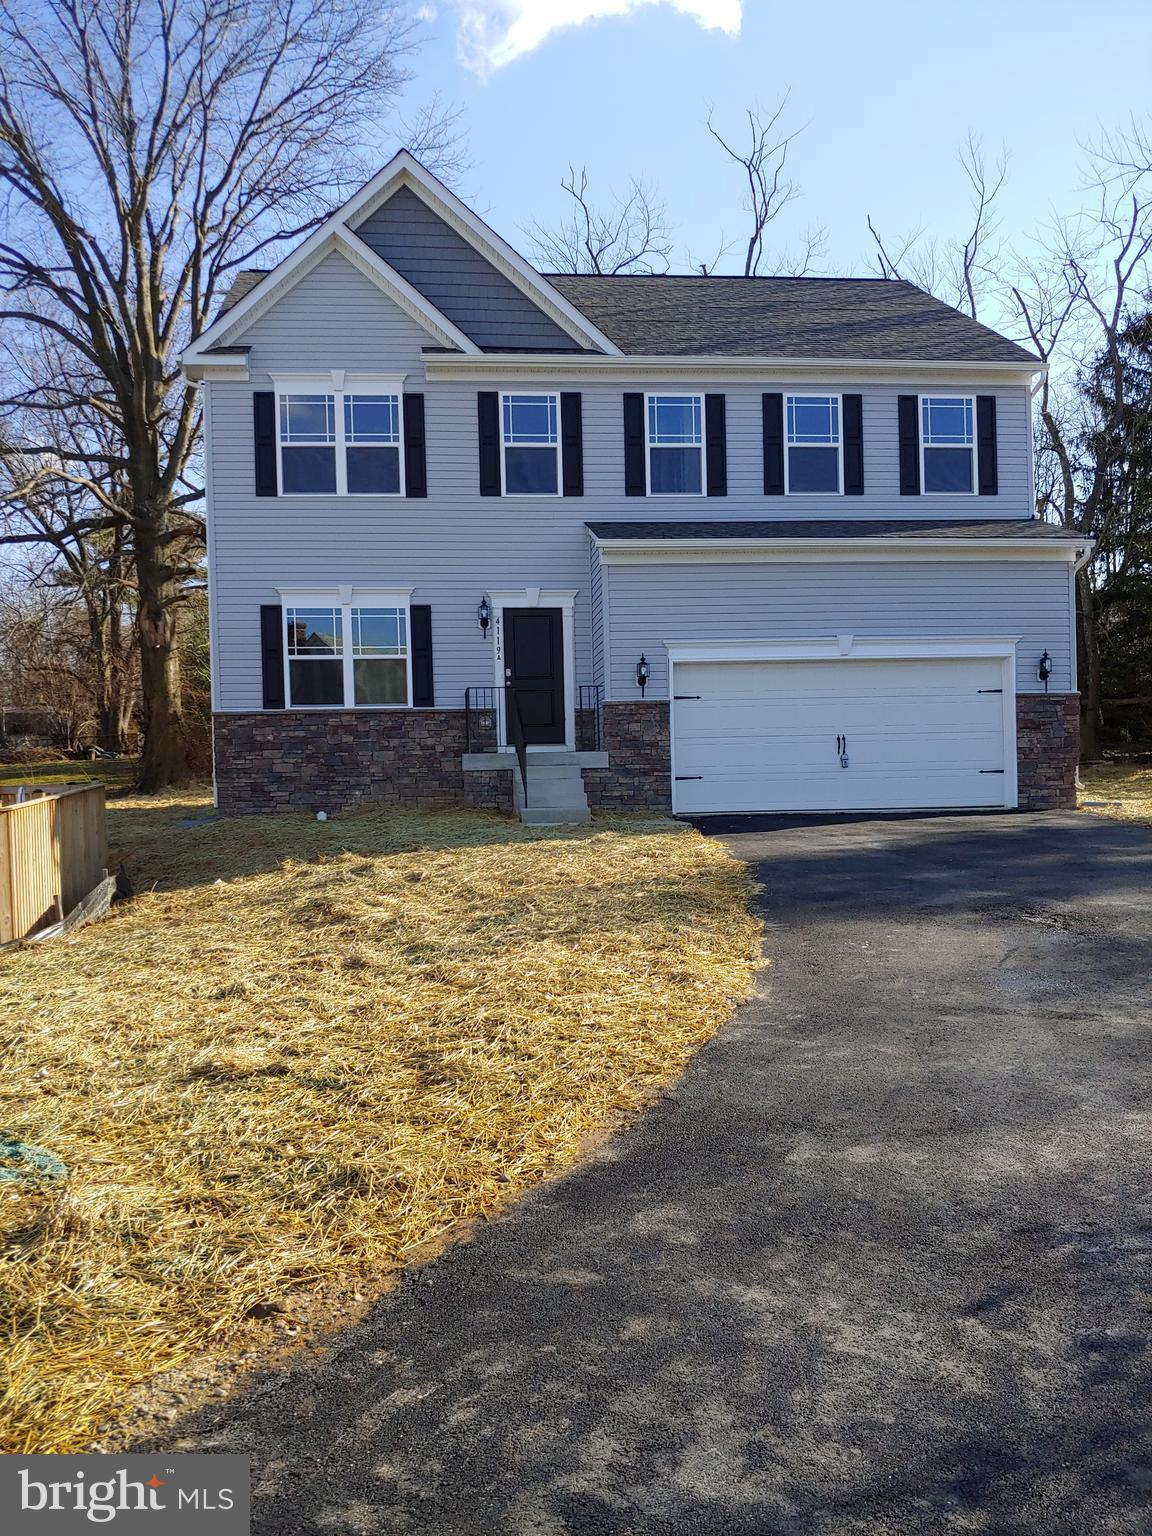 19742 GRAYSTONE ROAD, WHITE HALL, MD 21161